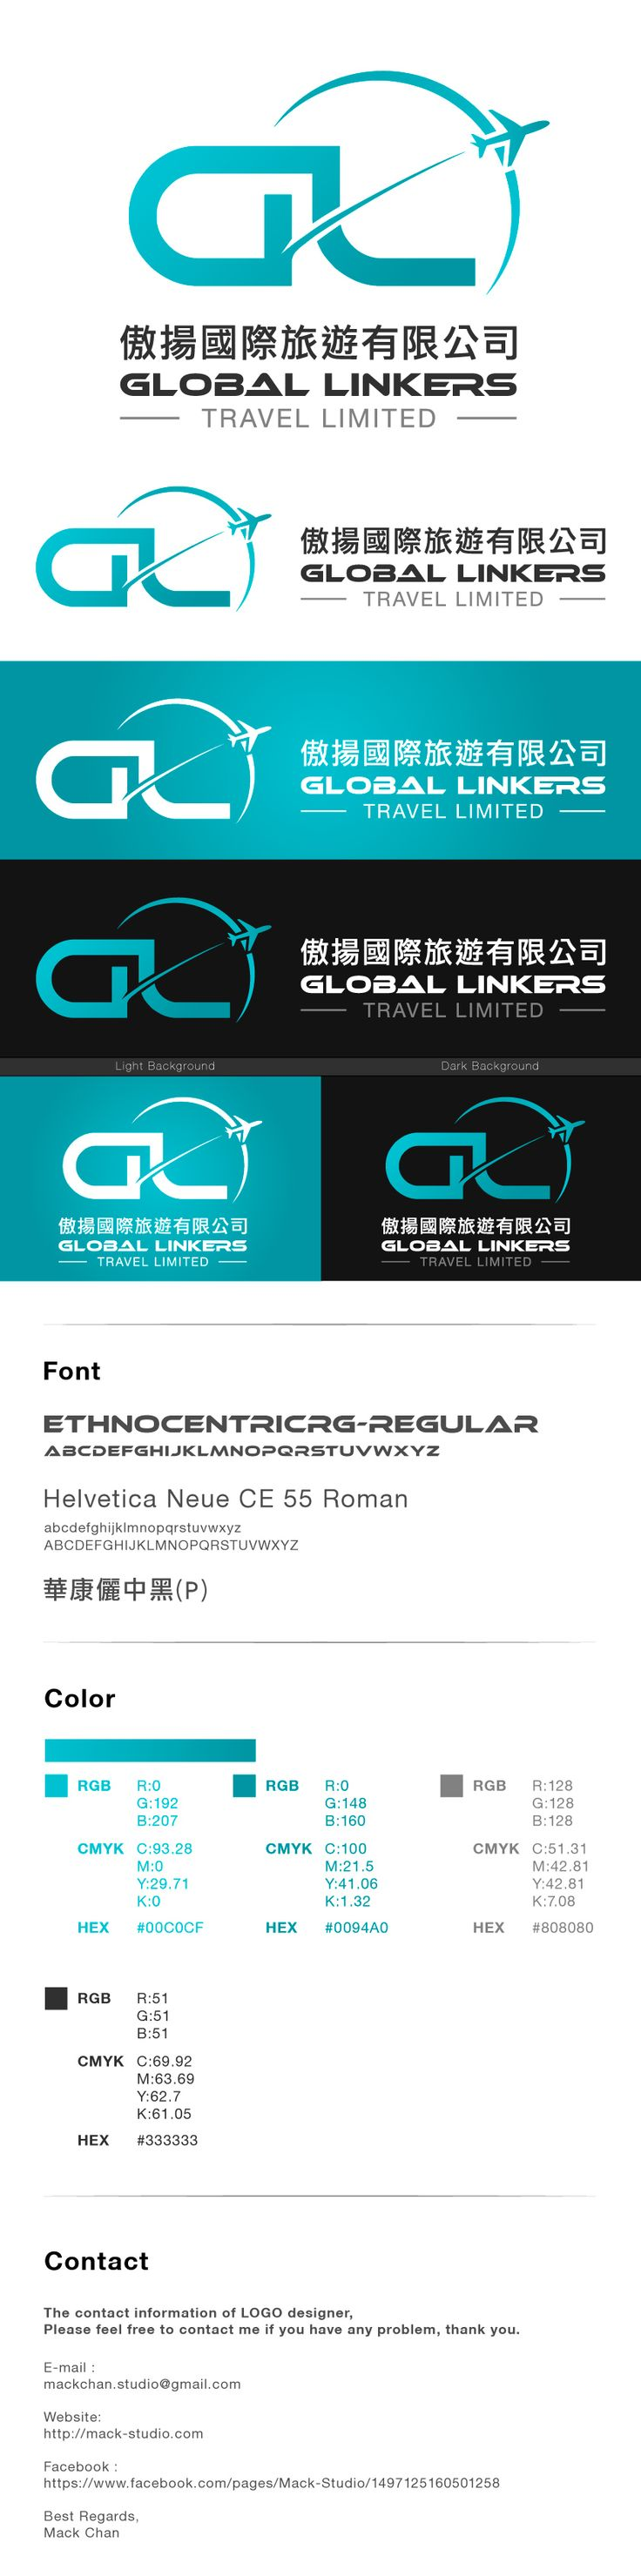 Client name : Global Linkers Travel Limited (Travel Agent) Business Card, Envelope and Letterhead Project type : LOGO Design 客戶名稱:傲揚國際旅遊有限公司 (旅行社) 卡片,信封和信笺 項目類別:LOGO設計  Contact information:   Facebook : https://www.facebook.com/pages/Mack-Studio/1497125160501258?sk=photos_stream&tab=photos_albums Pinterest : https://www.pinterest.com/Mack_Studio Website: http://mack-studio.com E-mail: mackchan.studio@gmail.com Skype: Mack Chan  Best Regards, Mack Chan